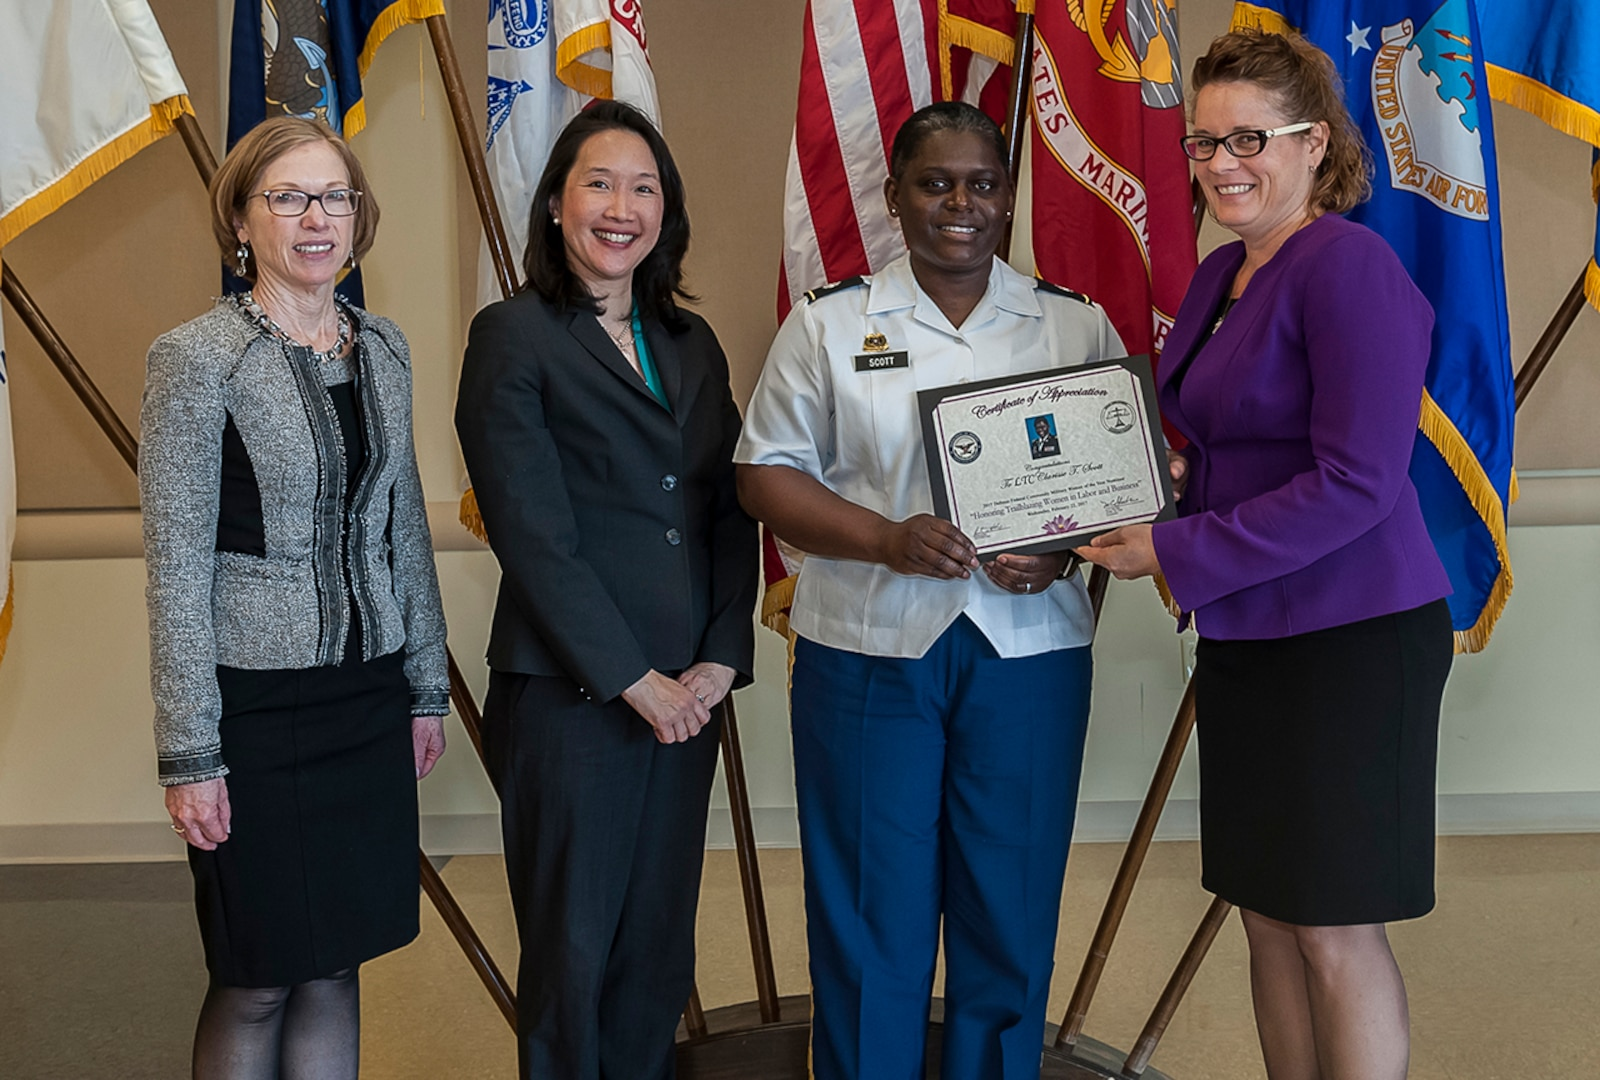 The 2017 Military Woman of the Year was Army Lt. Col. Clarisse Scott, military deputy director of Land Supplier Operations at DLA Land and Maritime. She received the award during an annual Women's History Month Luncheon Mar. 22 at Defense Supply Center Columbus. Pictured with Scott is (from left) Deborah Haven, Land and Maritime deputy director of Maritime Customer Operations; Jenny Yang, U.S. EEO commissioner; and Rebecca Beck, deputy site director for DFAS Columbus.